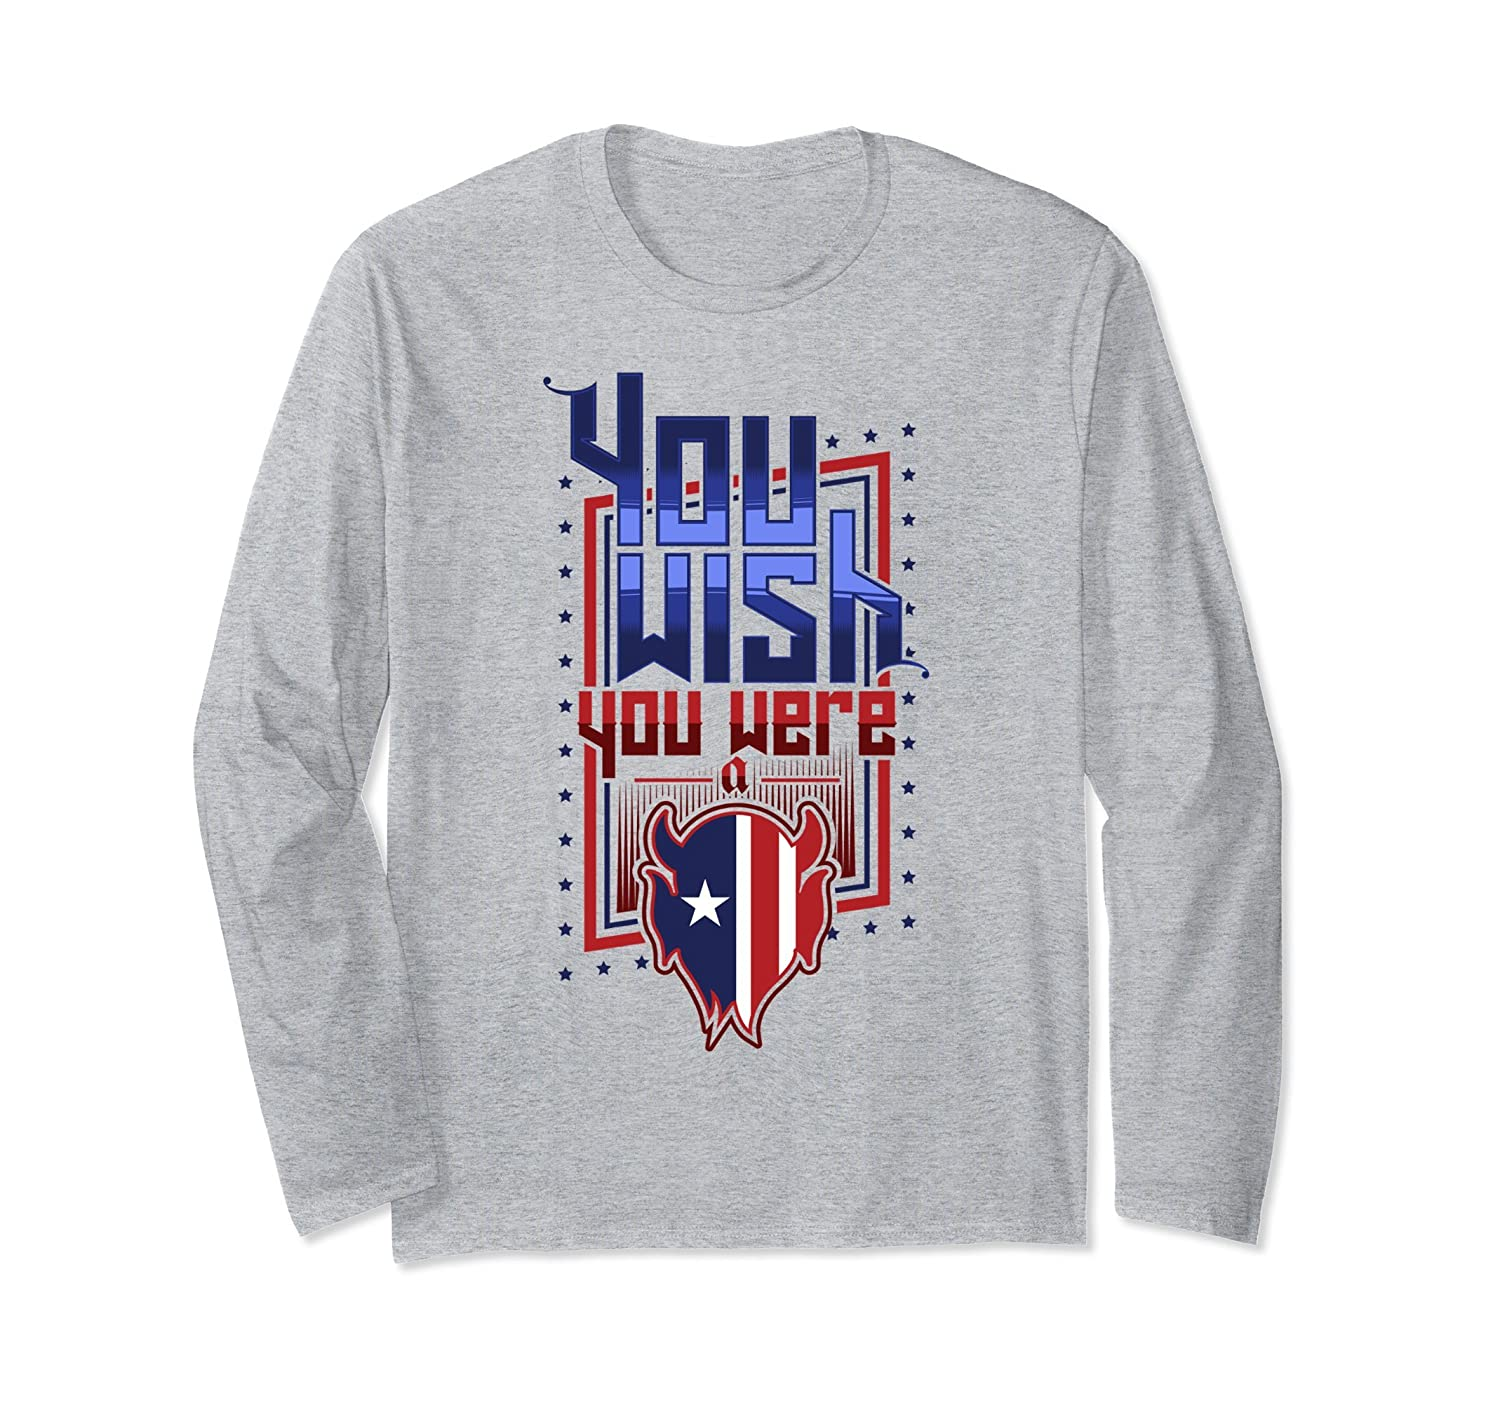 You Wish You Were a Zanesville Blue Devil Long Sleeve Tee-mt